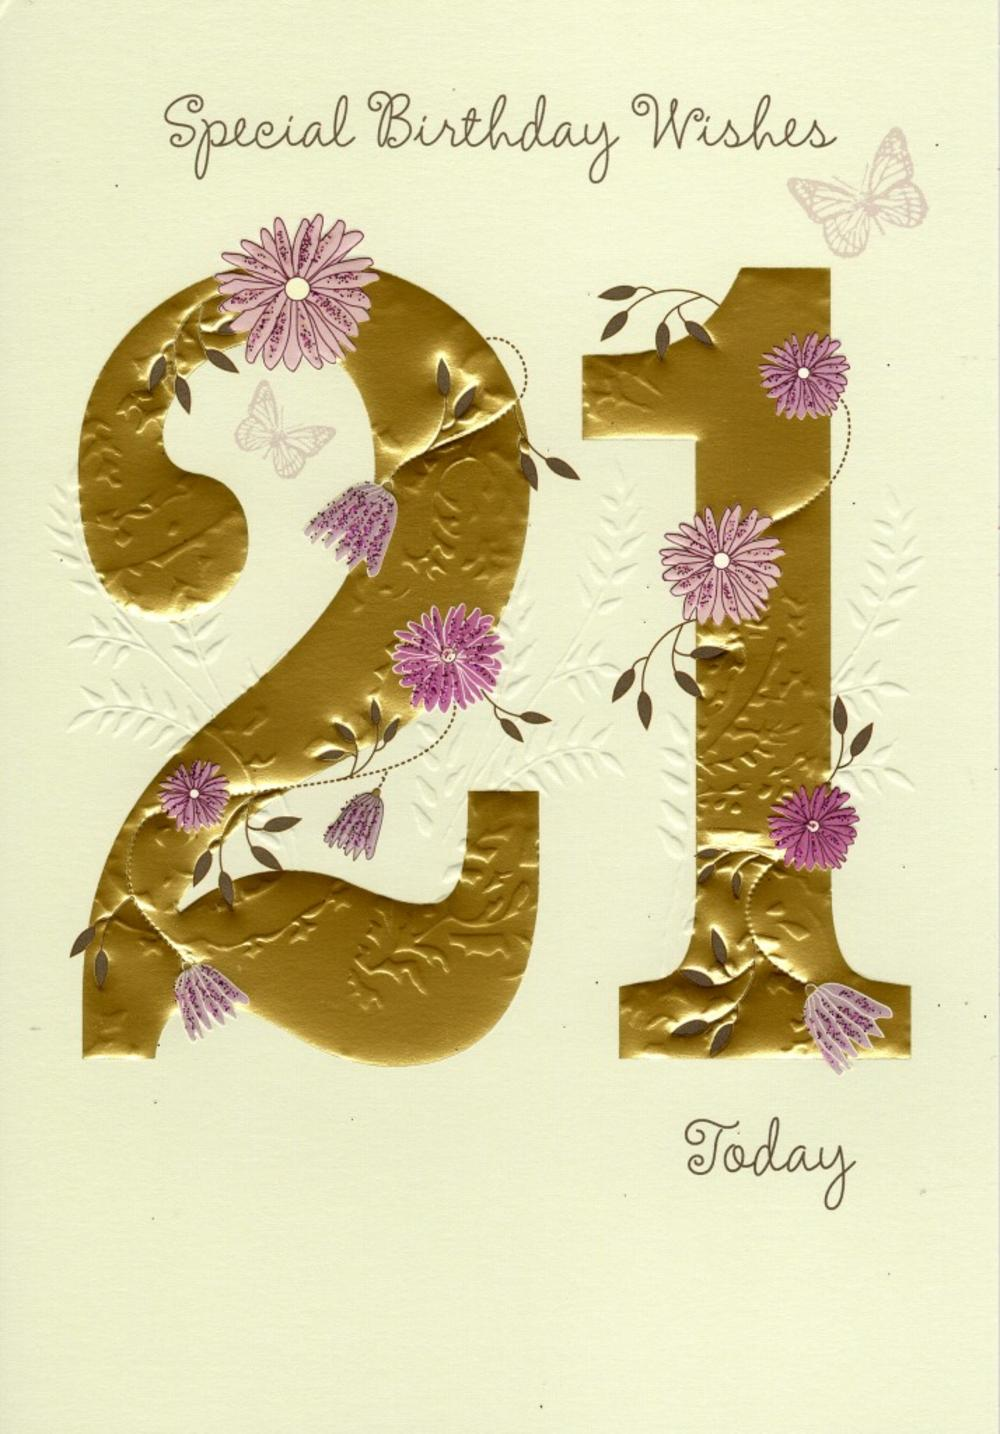 21st birthday greeting cards ; lrgscaleFLD021a-Birthday-Card